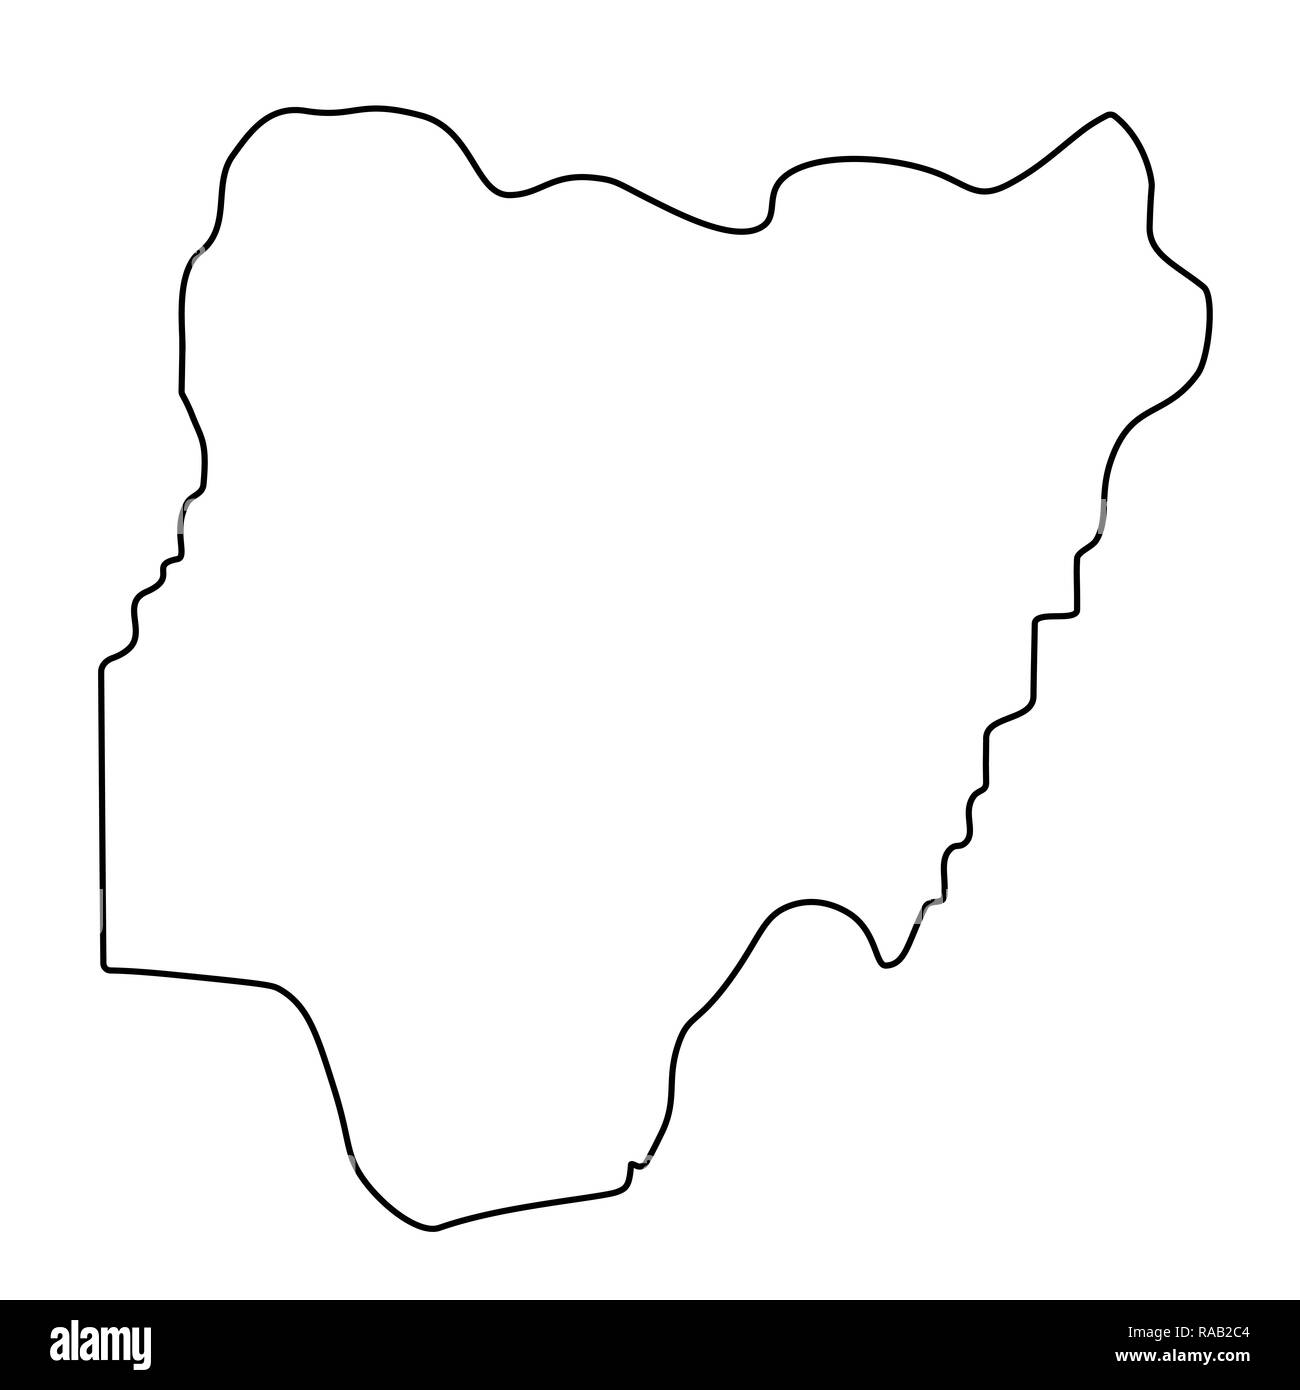 map of Nigeria - outline. Silhouette of Nigeria map  illustration - Stock Image